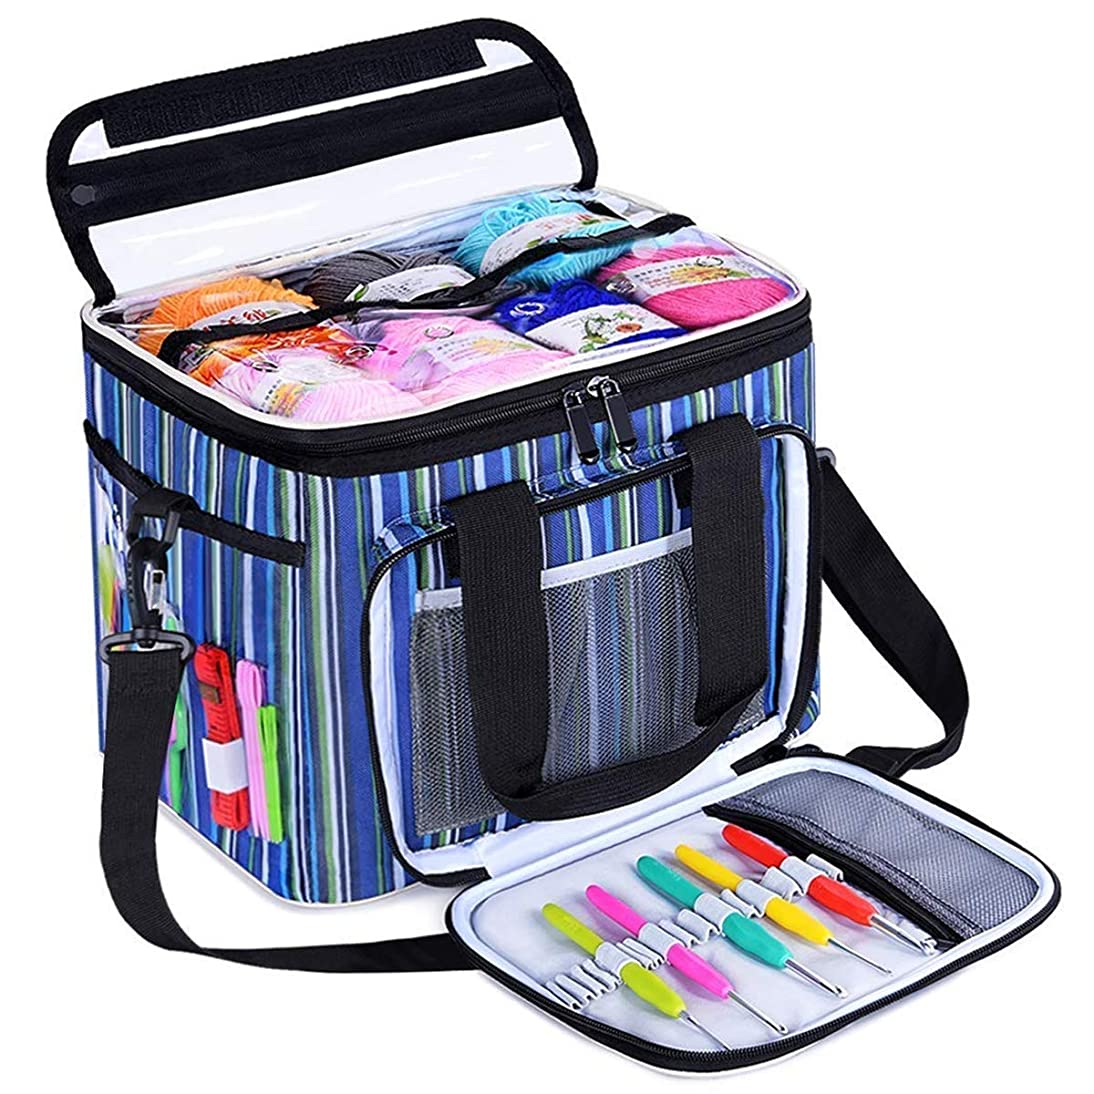 BONTIME Knitting Bag - High Capacity Striped Yarn Storage Tote Bag, Project Bags with Roomy Interior, Great for Organizing Everything You Need for Each of Projects, Medium